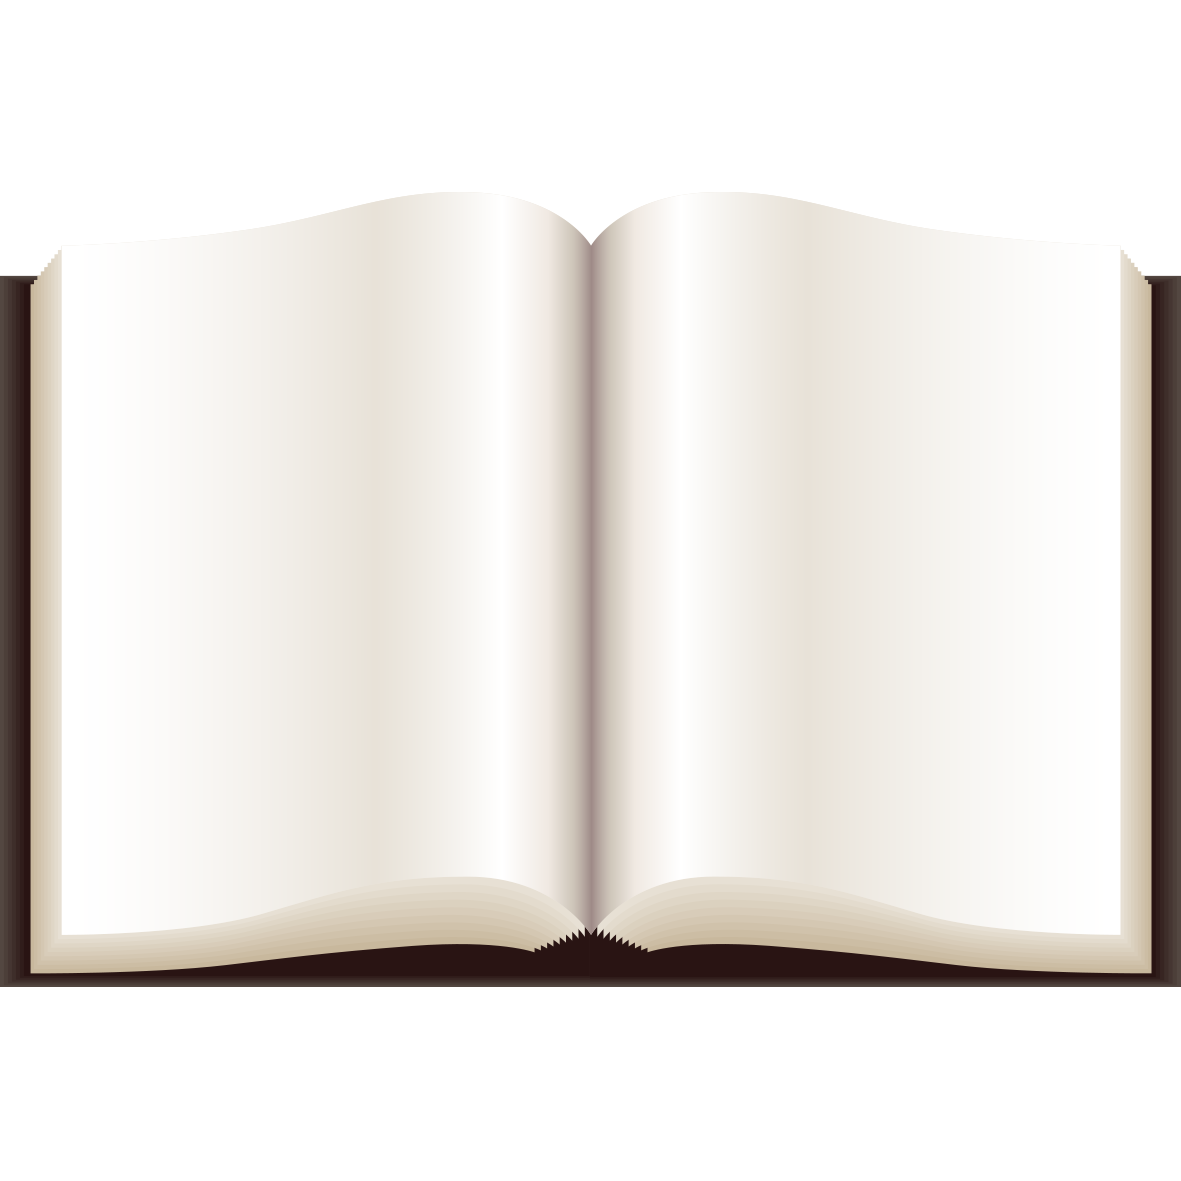 Blank book png. Paper angle pattern open